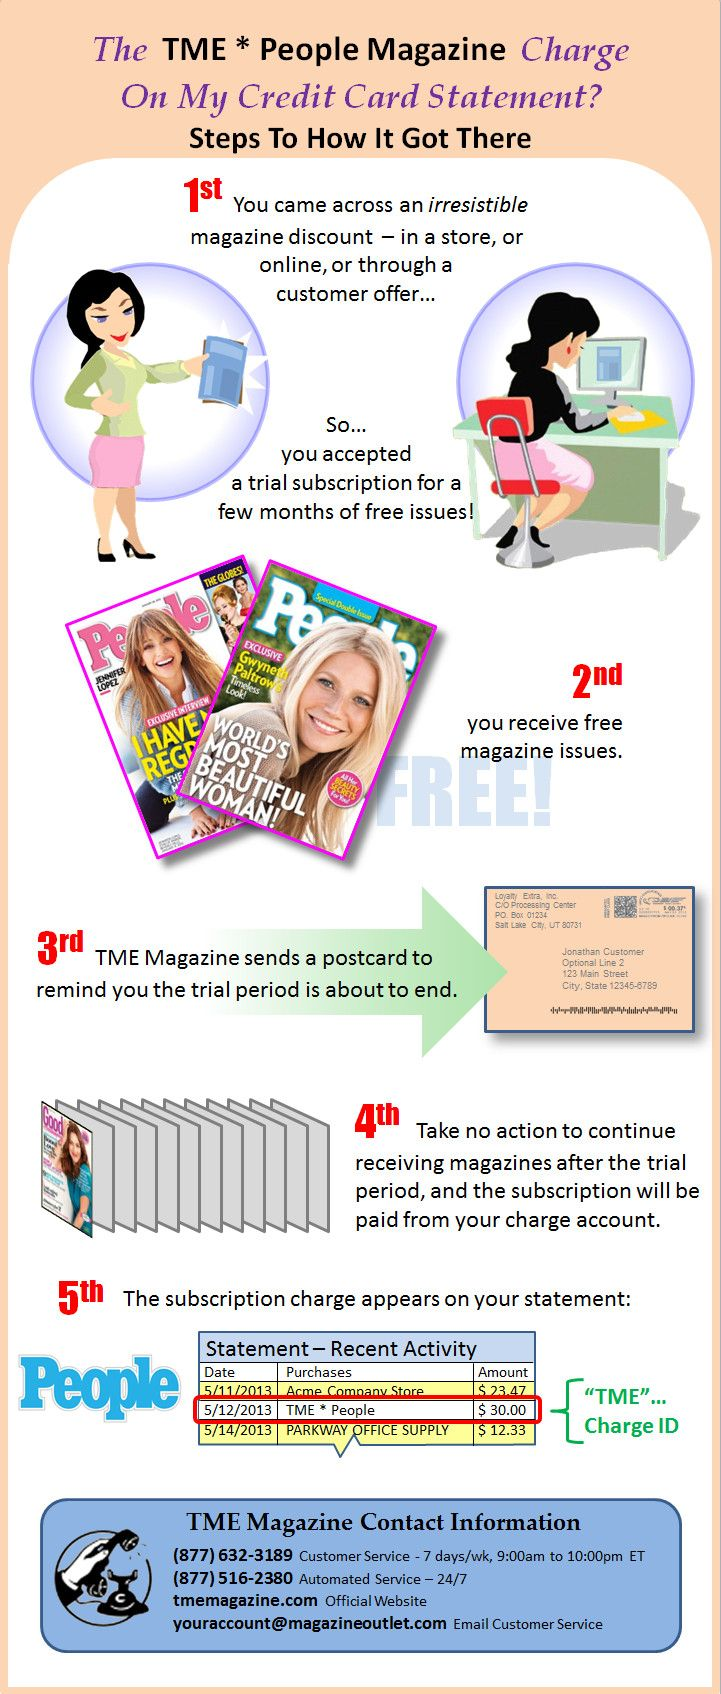 TME*PEOPLE - Infographic on how the TME People Magazine charge came to be on your credit card statement along with company contact information for you to be able to change or cancel your TME People magazine subscription.